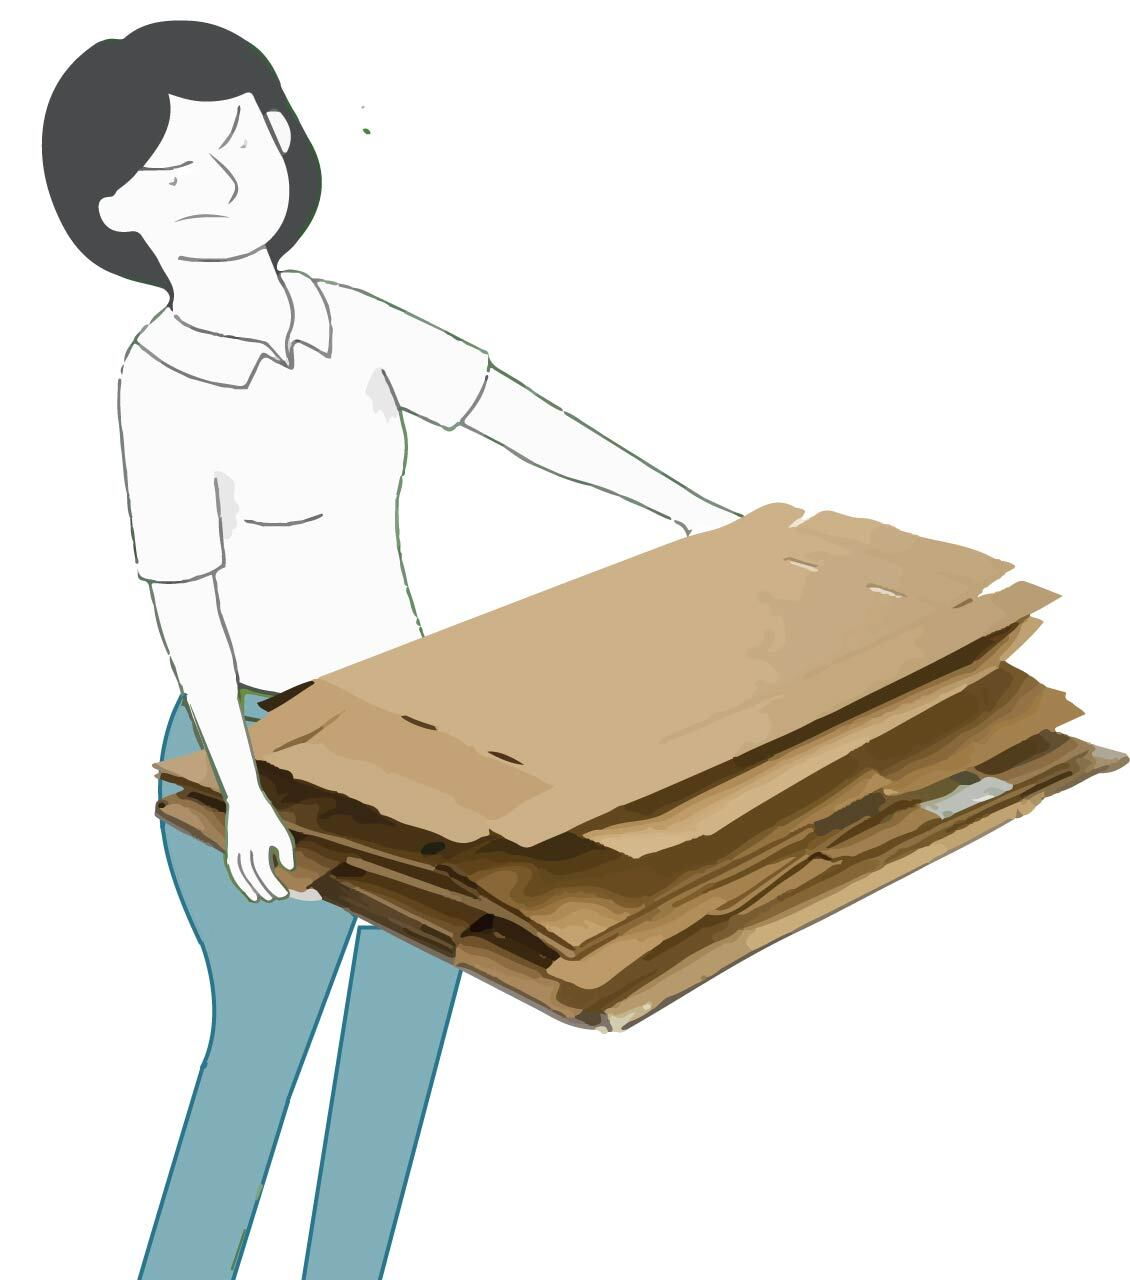 Easy Cardboard Disposal Services in Greensboro, NC